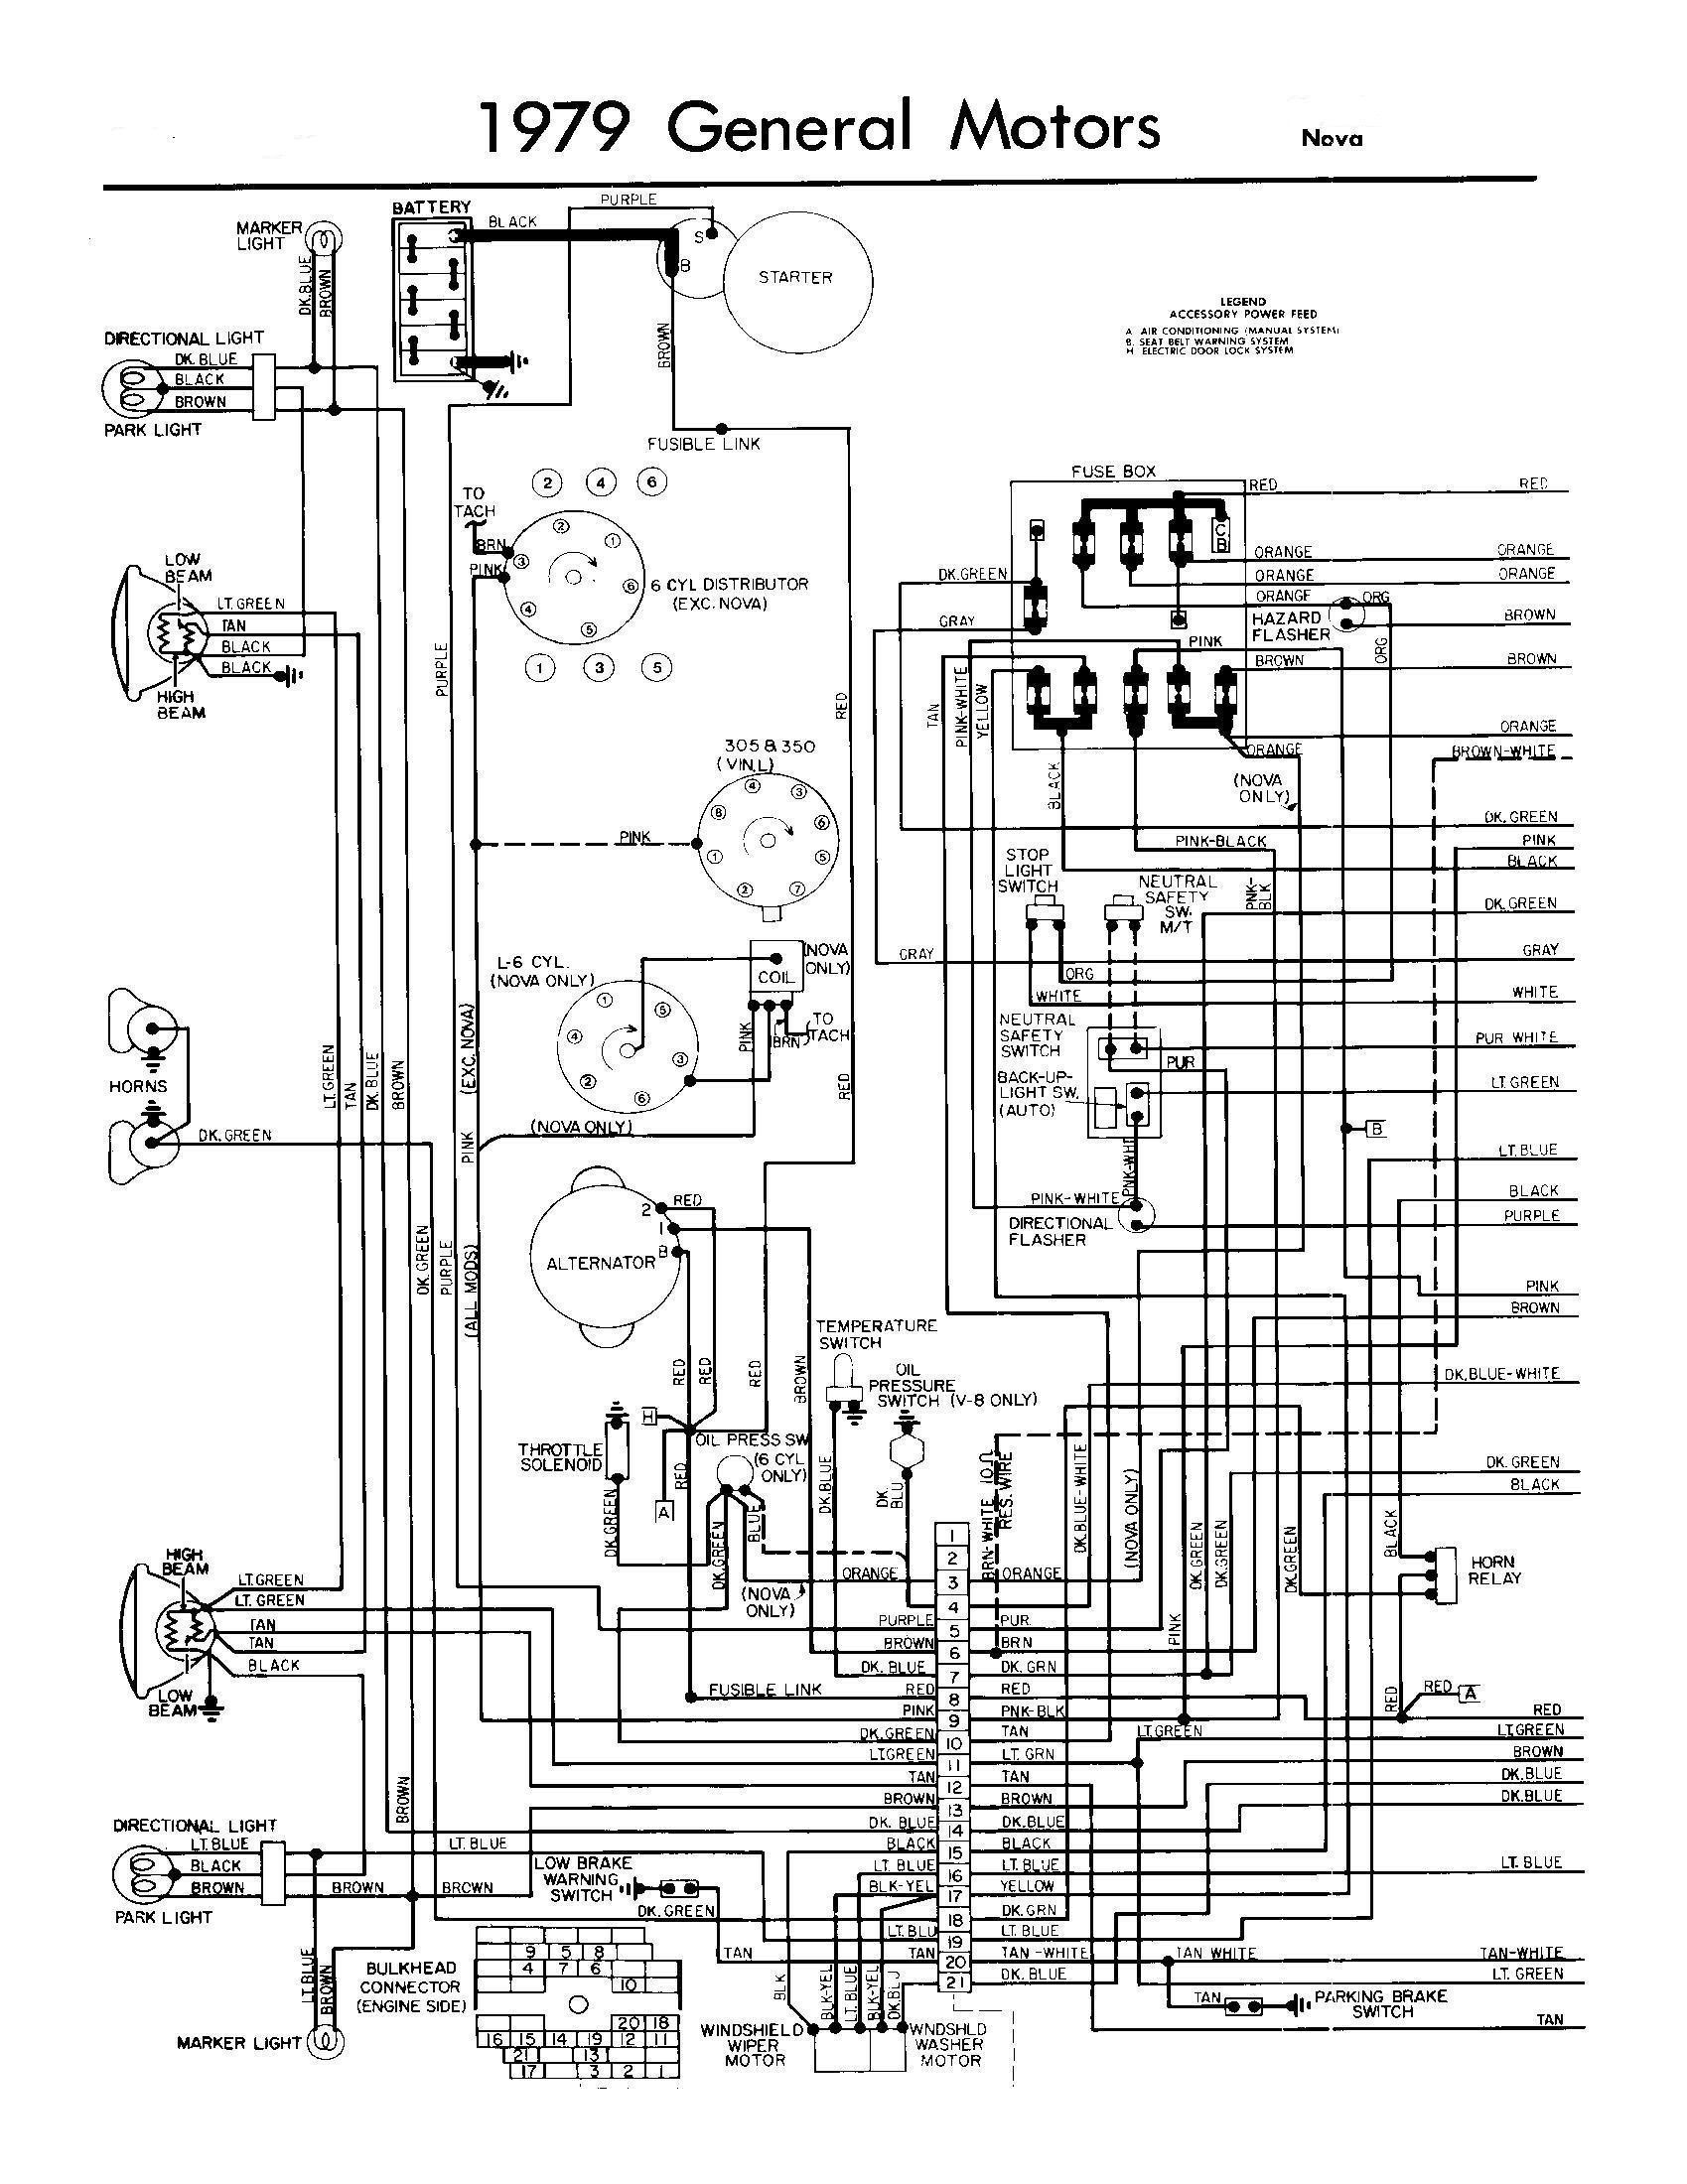 1965 Chevelle Wiring Diagram | Wiring Diagram Database